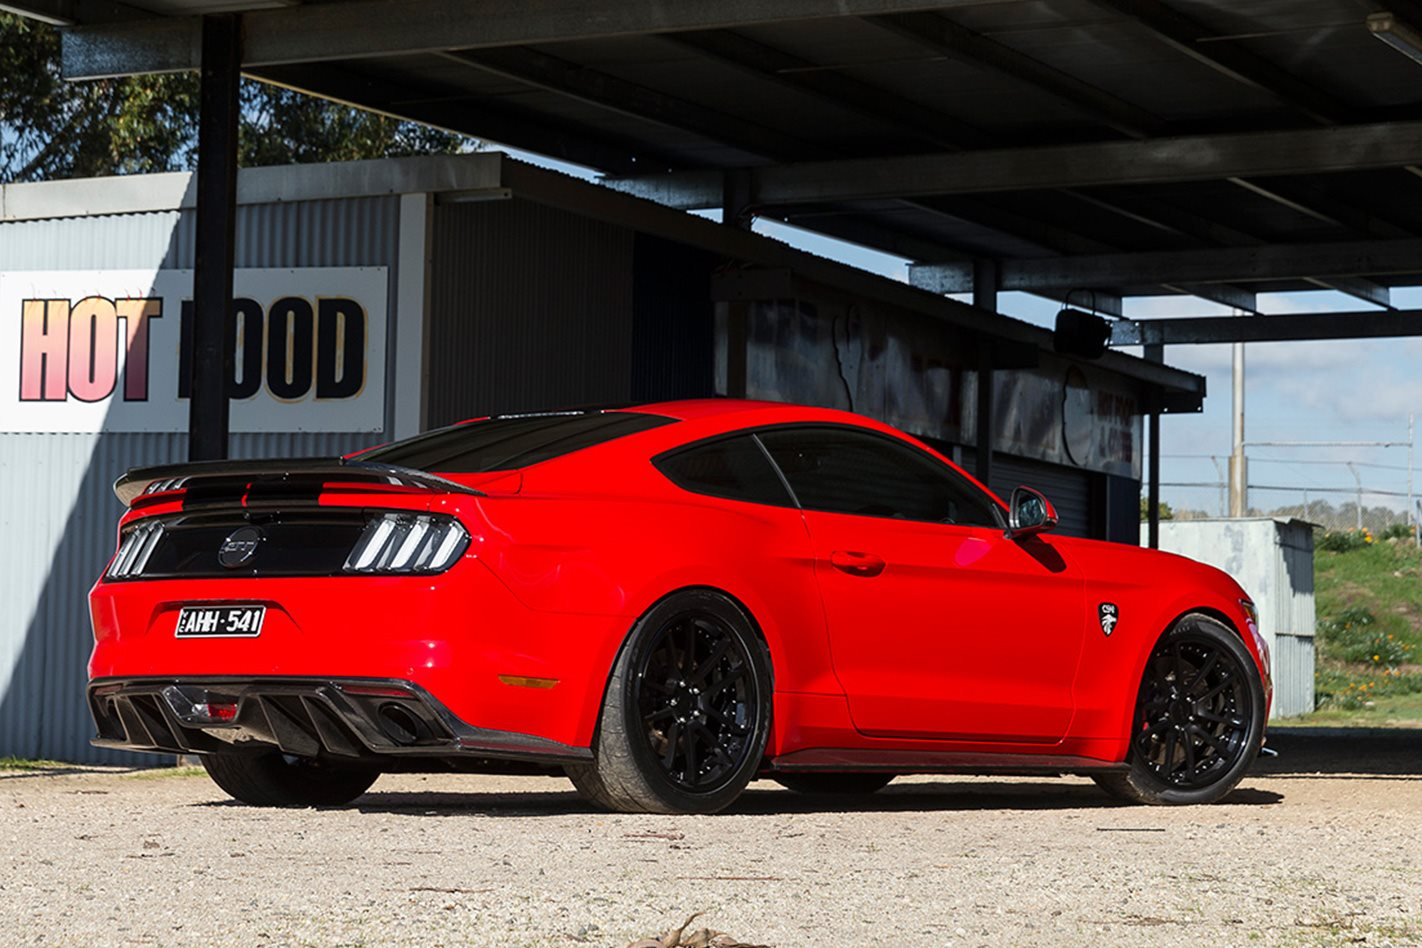 2017 Corsa Specialised Vehicles Mustang GT tyres